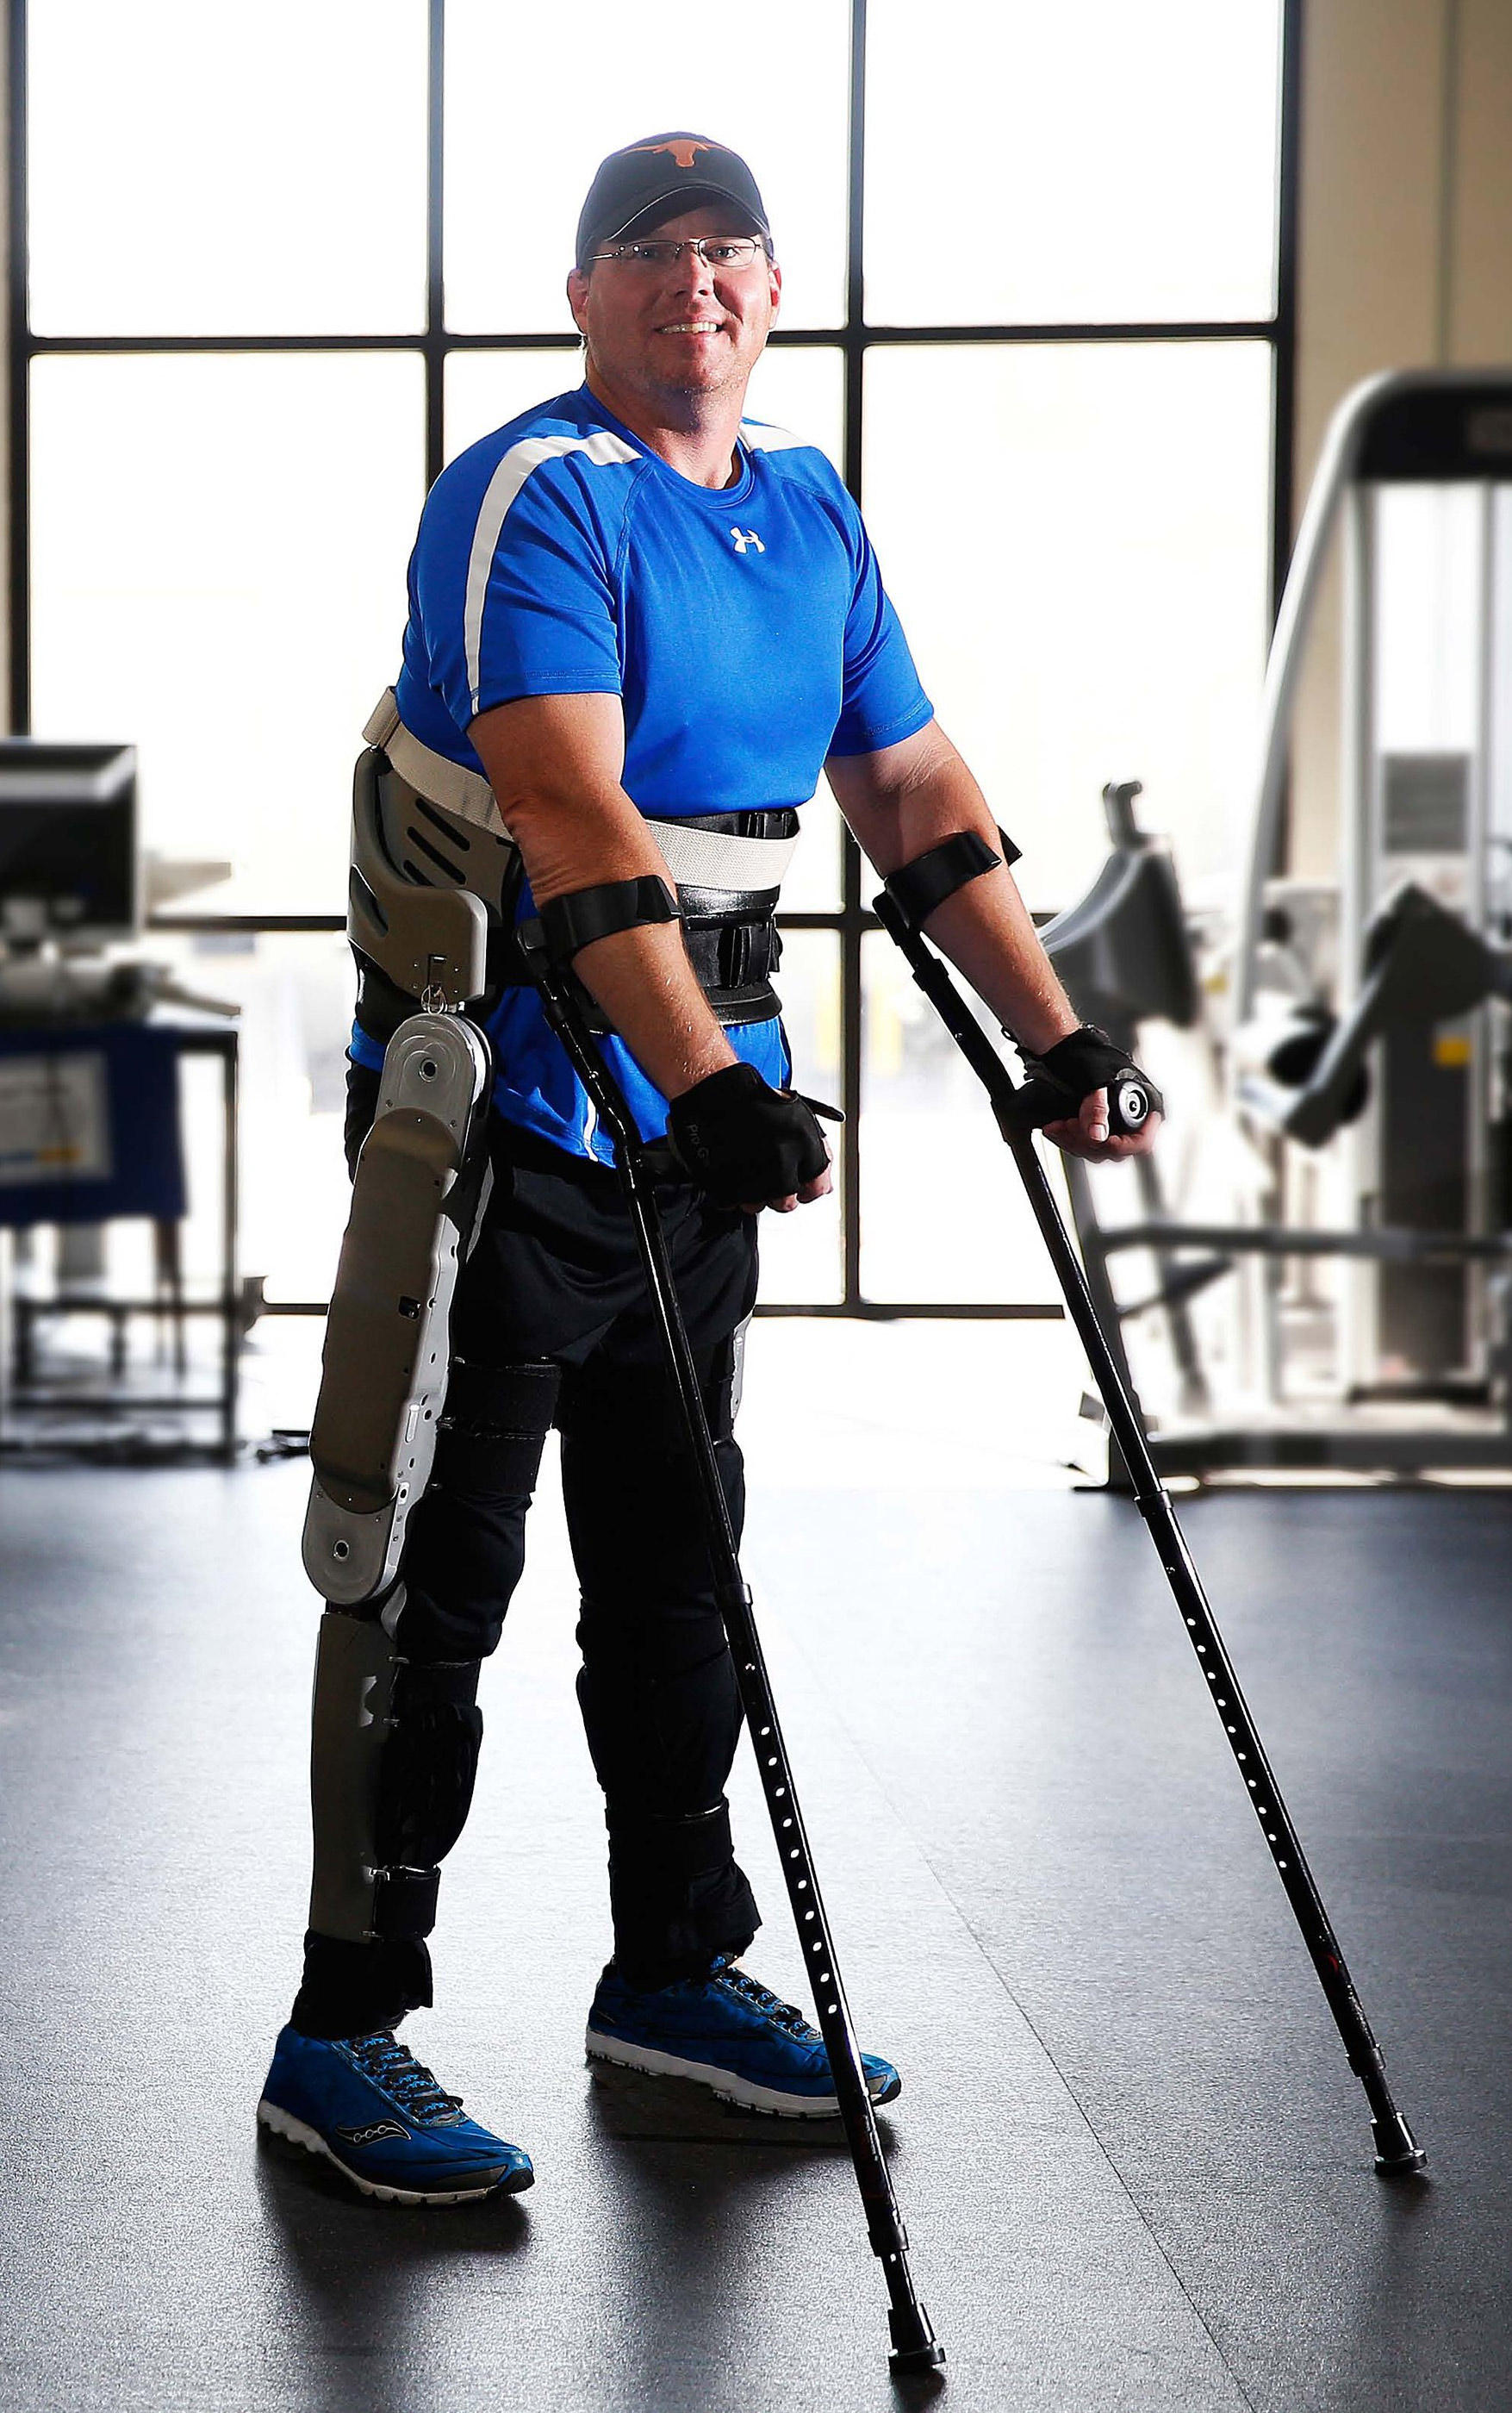 Brian Shaffer tests an exoskeleton developed by researchers at Vanderbilt University at a rehabilitation center in Franklin, Tenn.